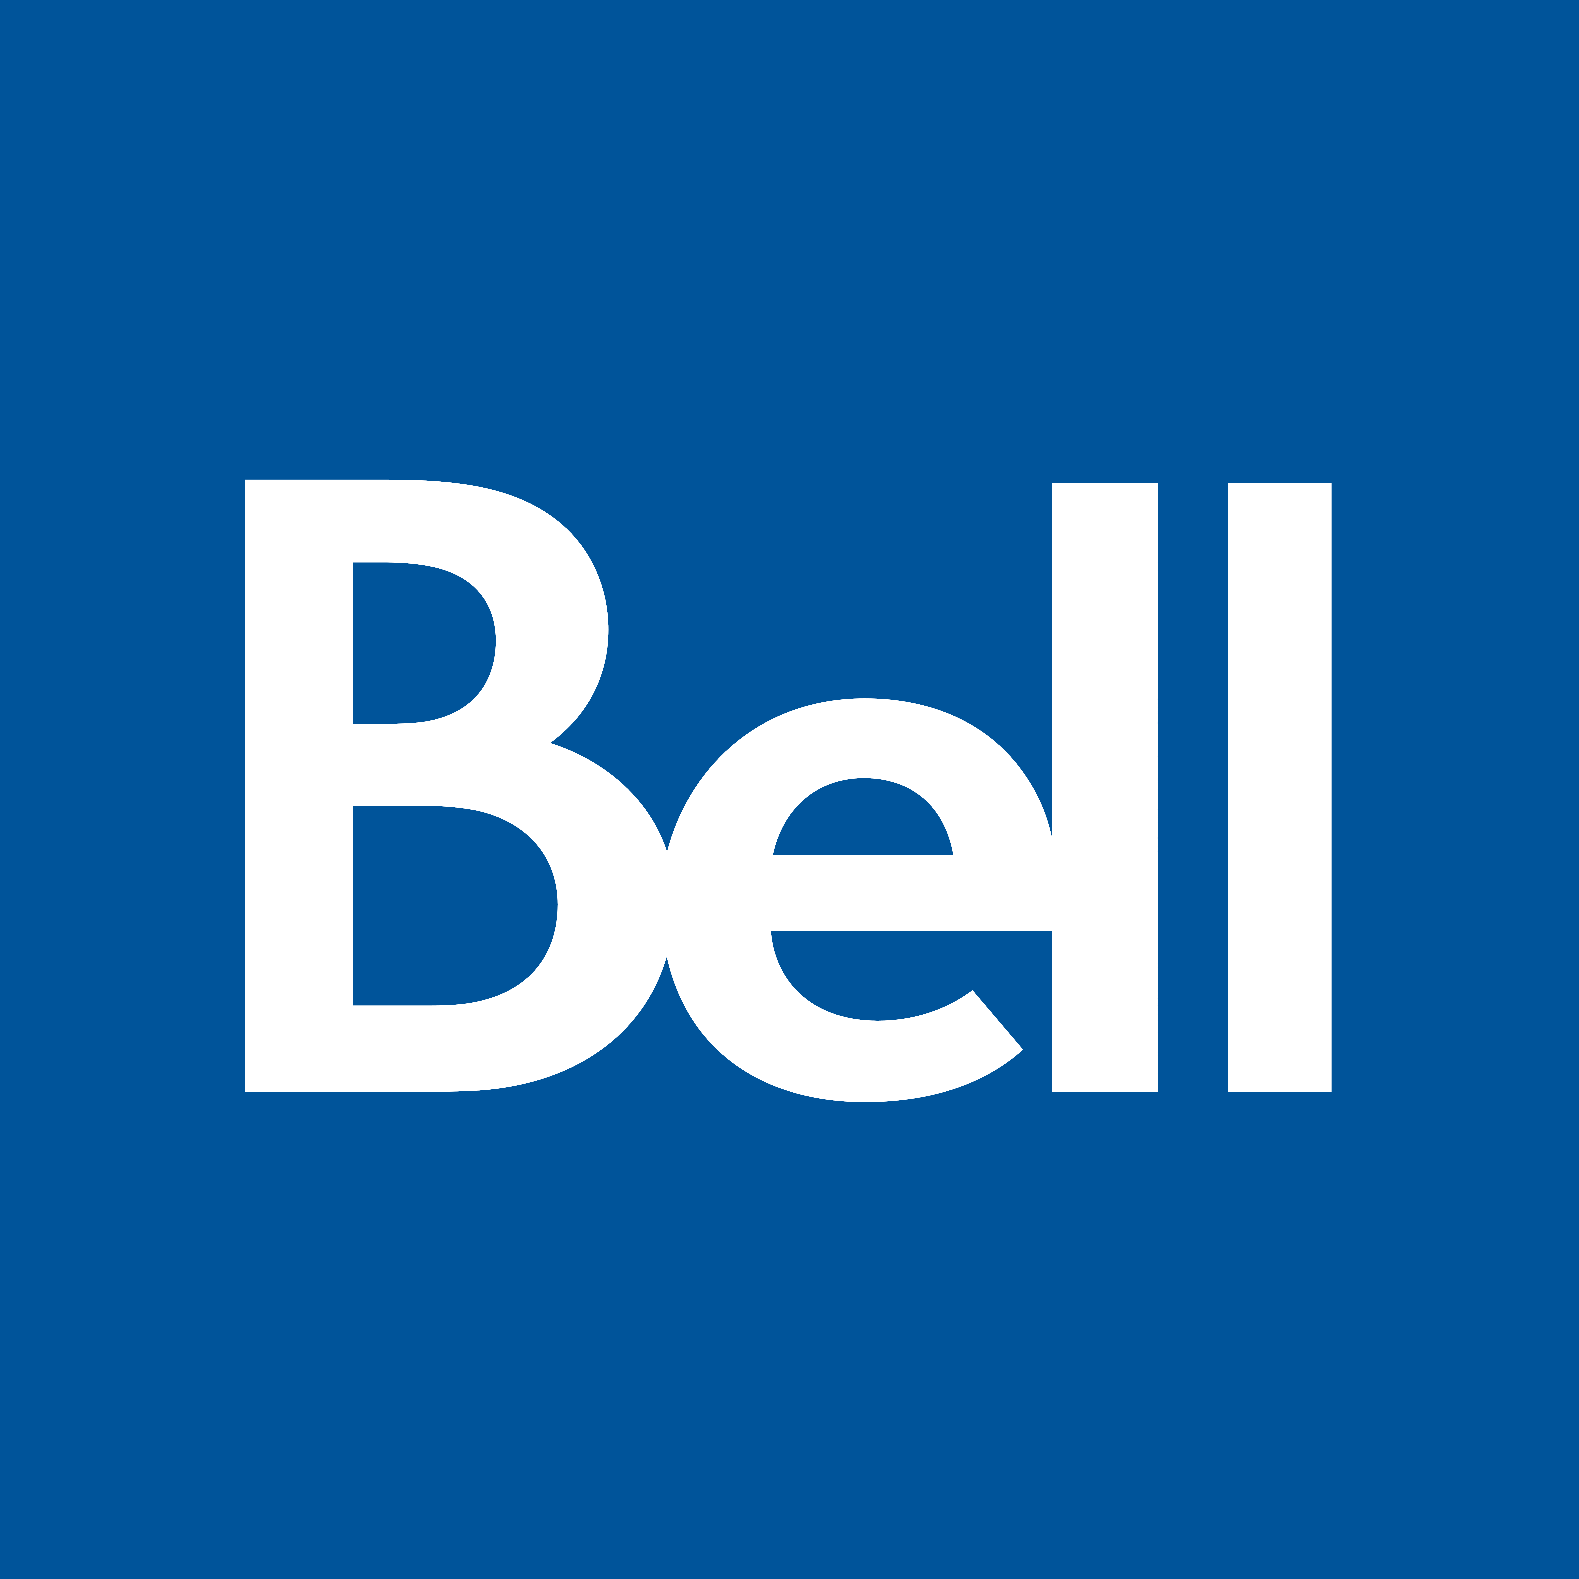 Bell Canada iPhone 3GS,3GS,4,4S,5,5S,5C,6,6S,SE,7 Unlock